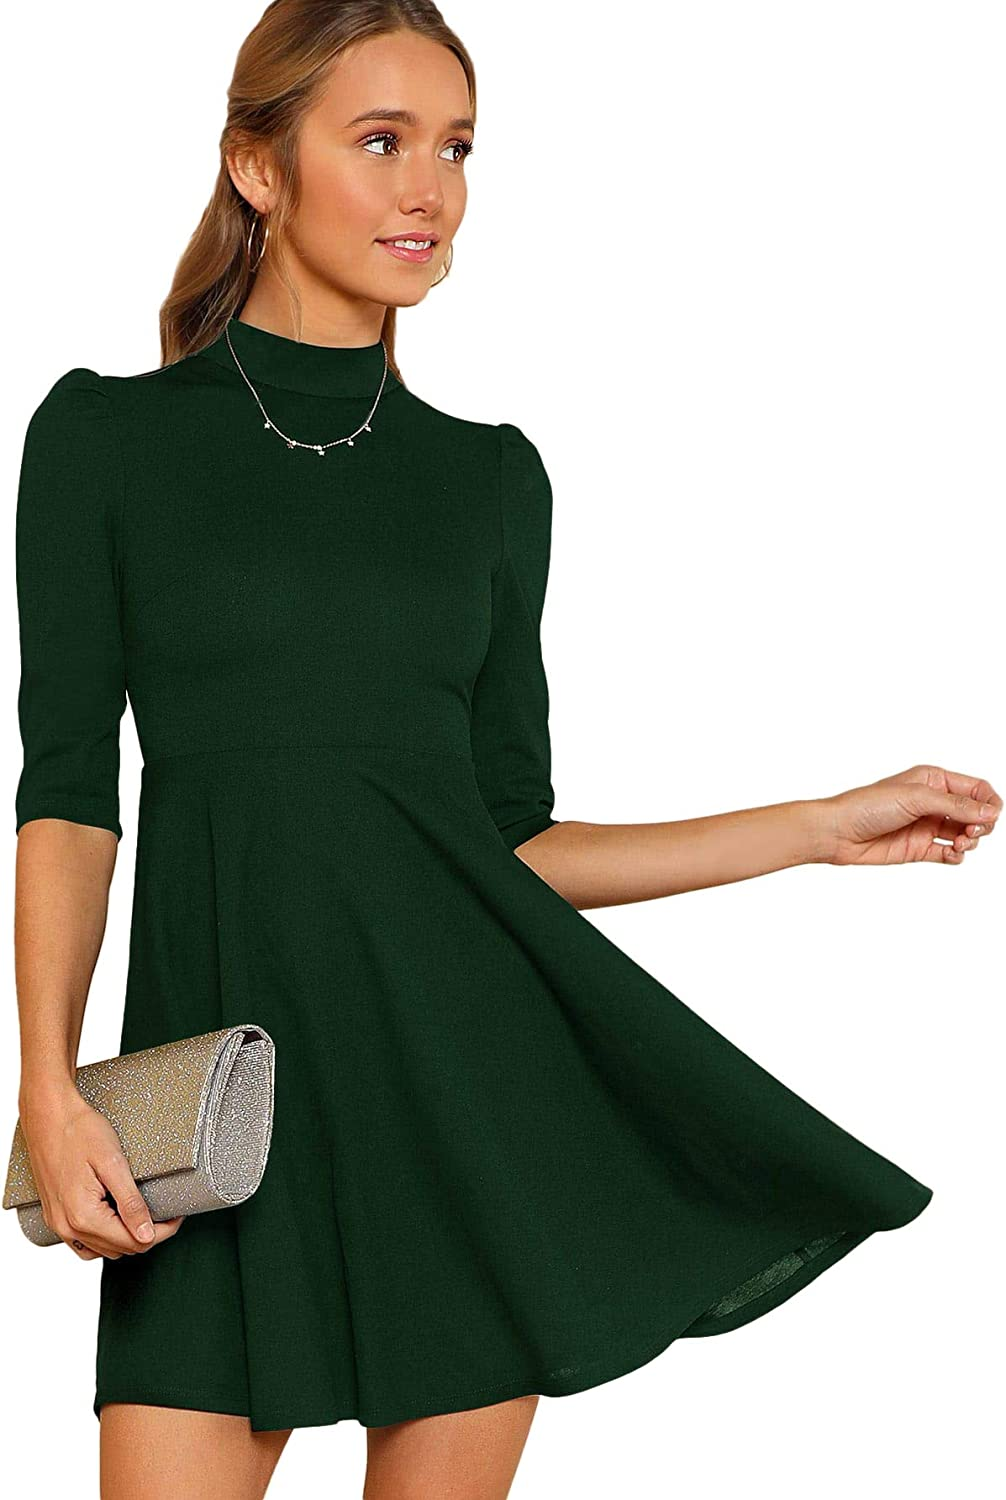 Floerns Women's Mock Neck Fit and Flare Work Cocktail Dress